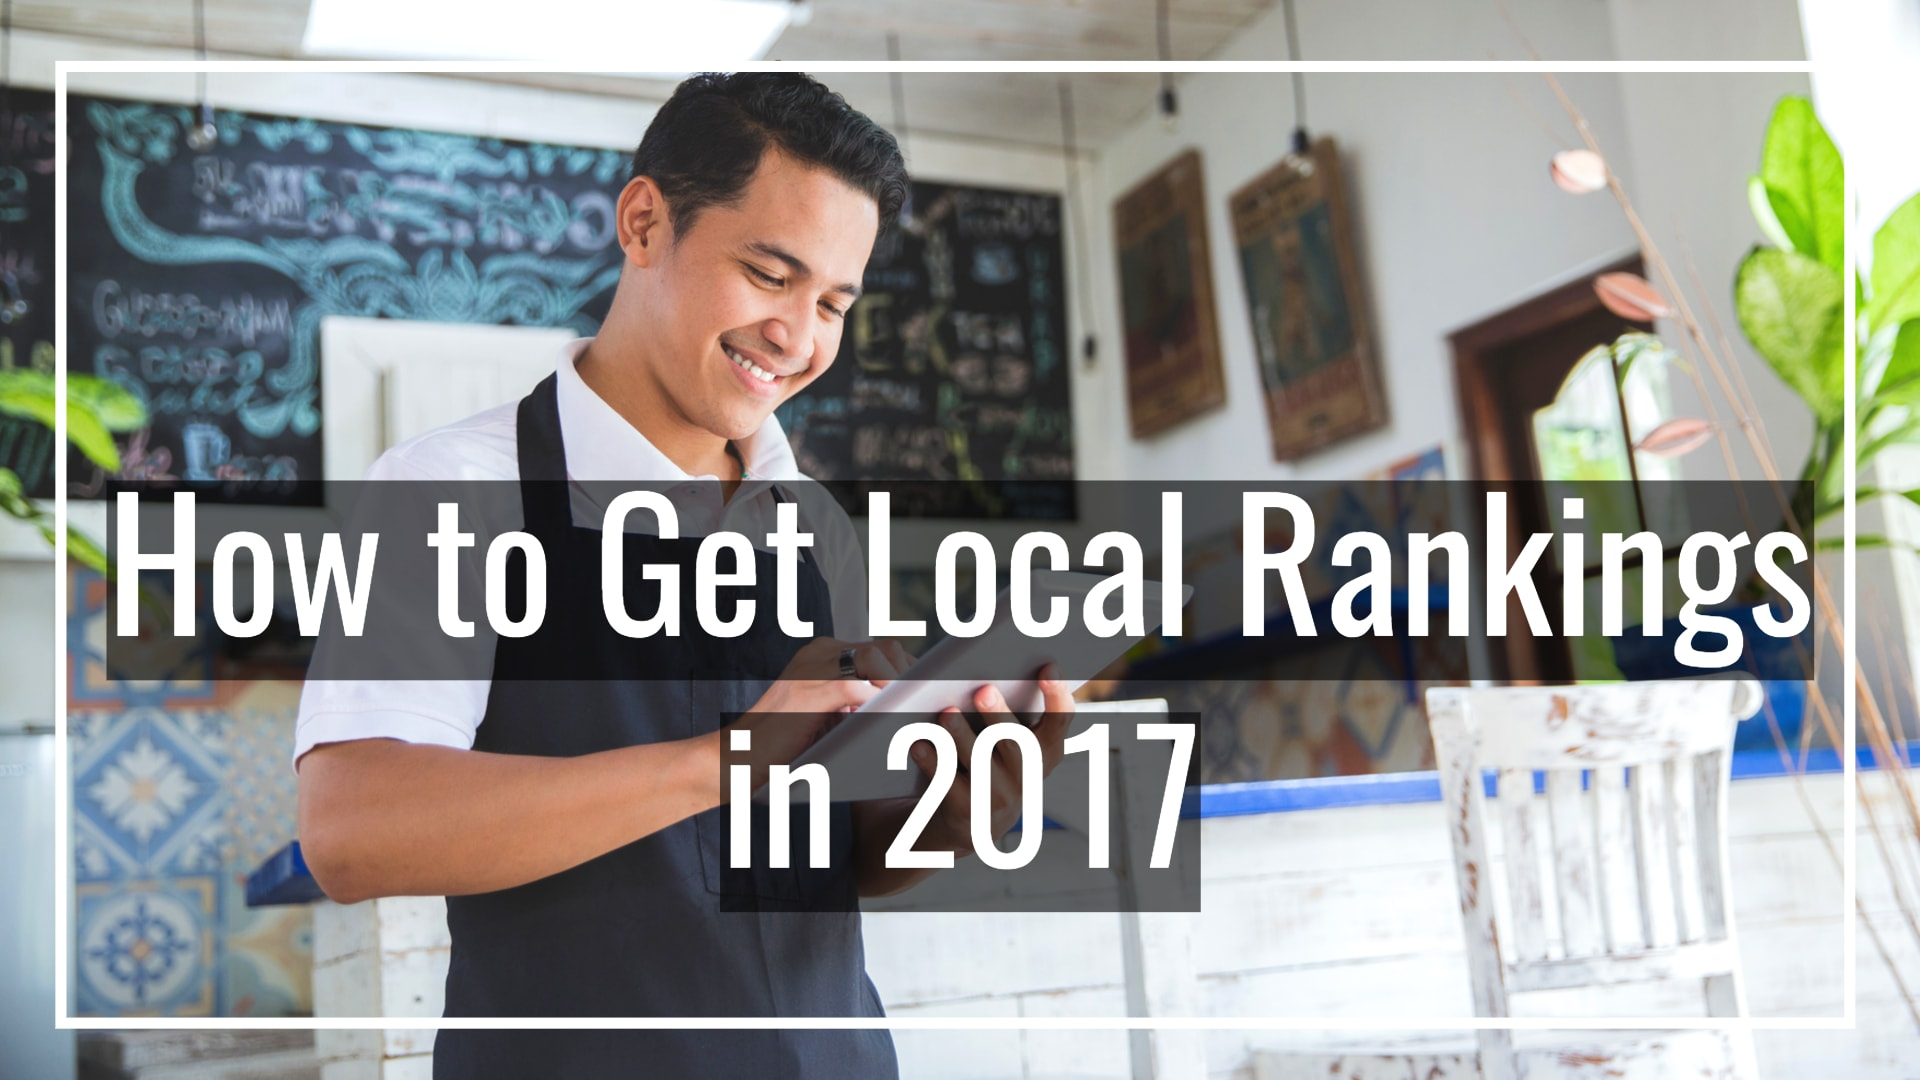 How To Get Local SEO Rankings in 2017